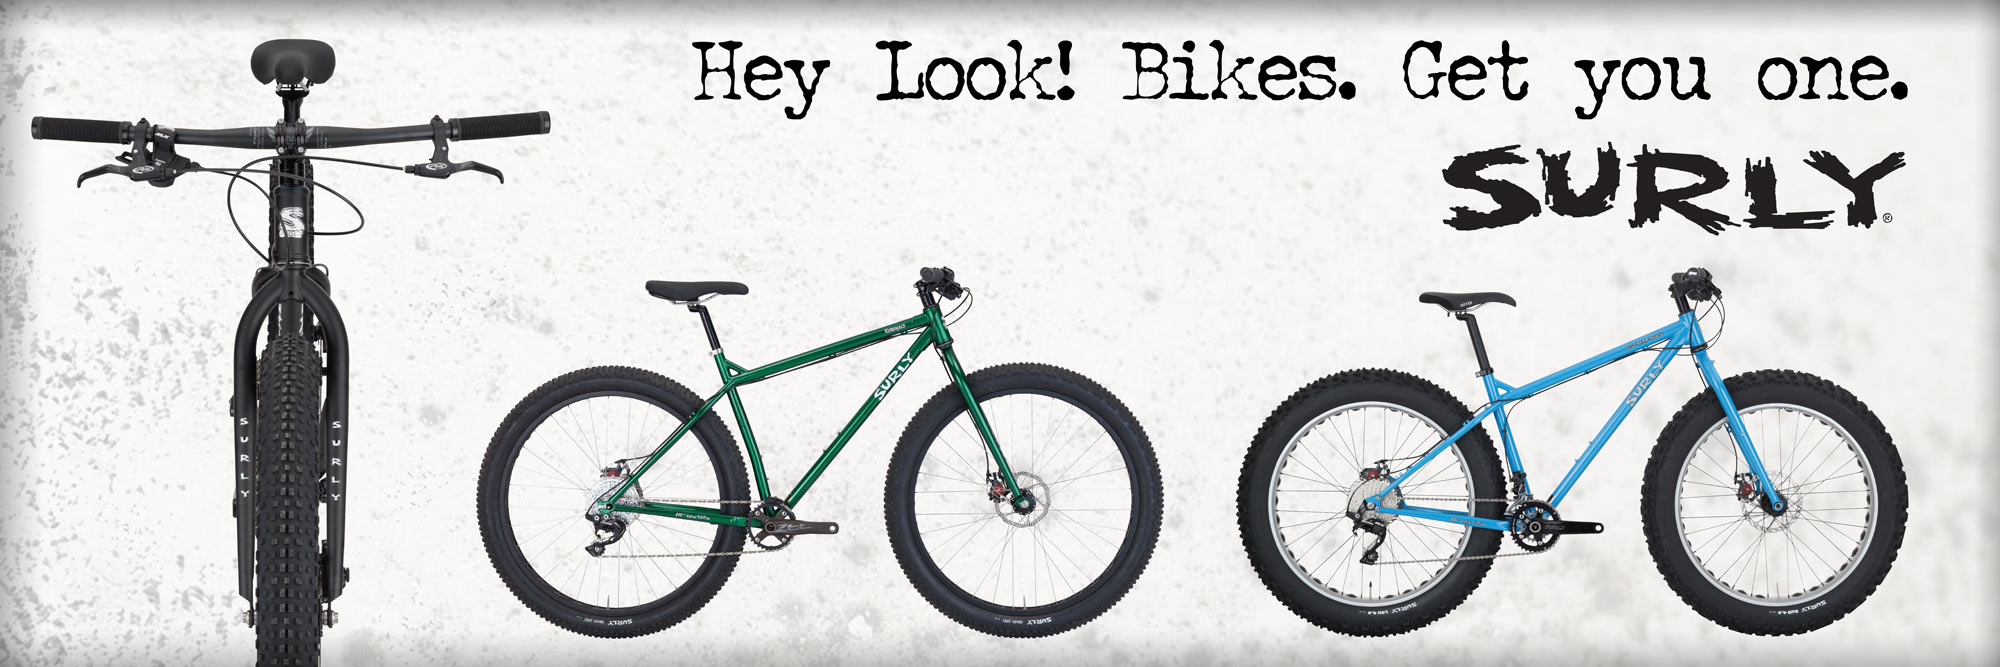 Surly Bikes—Get You One